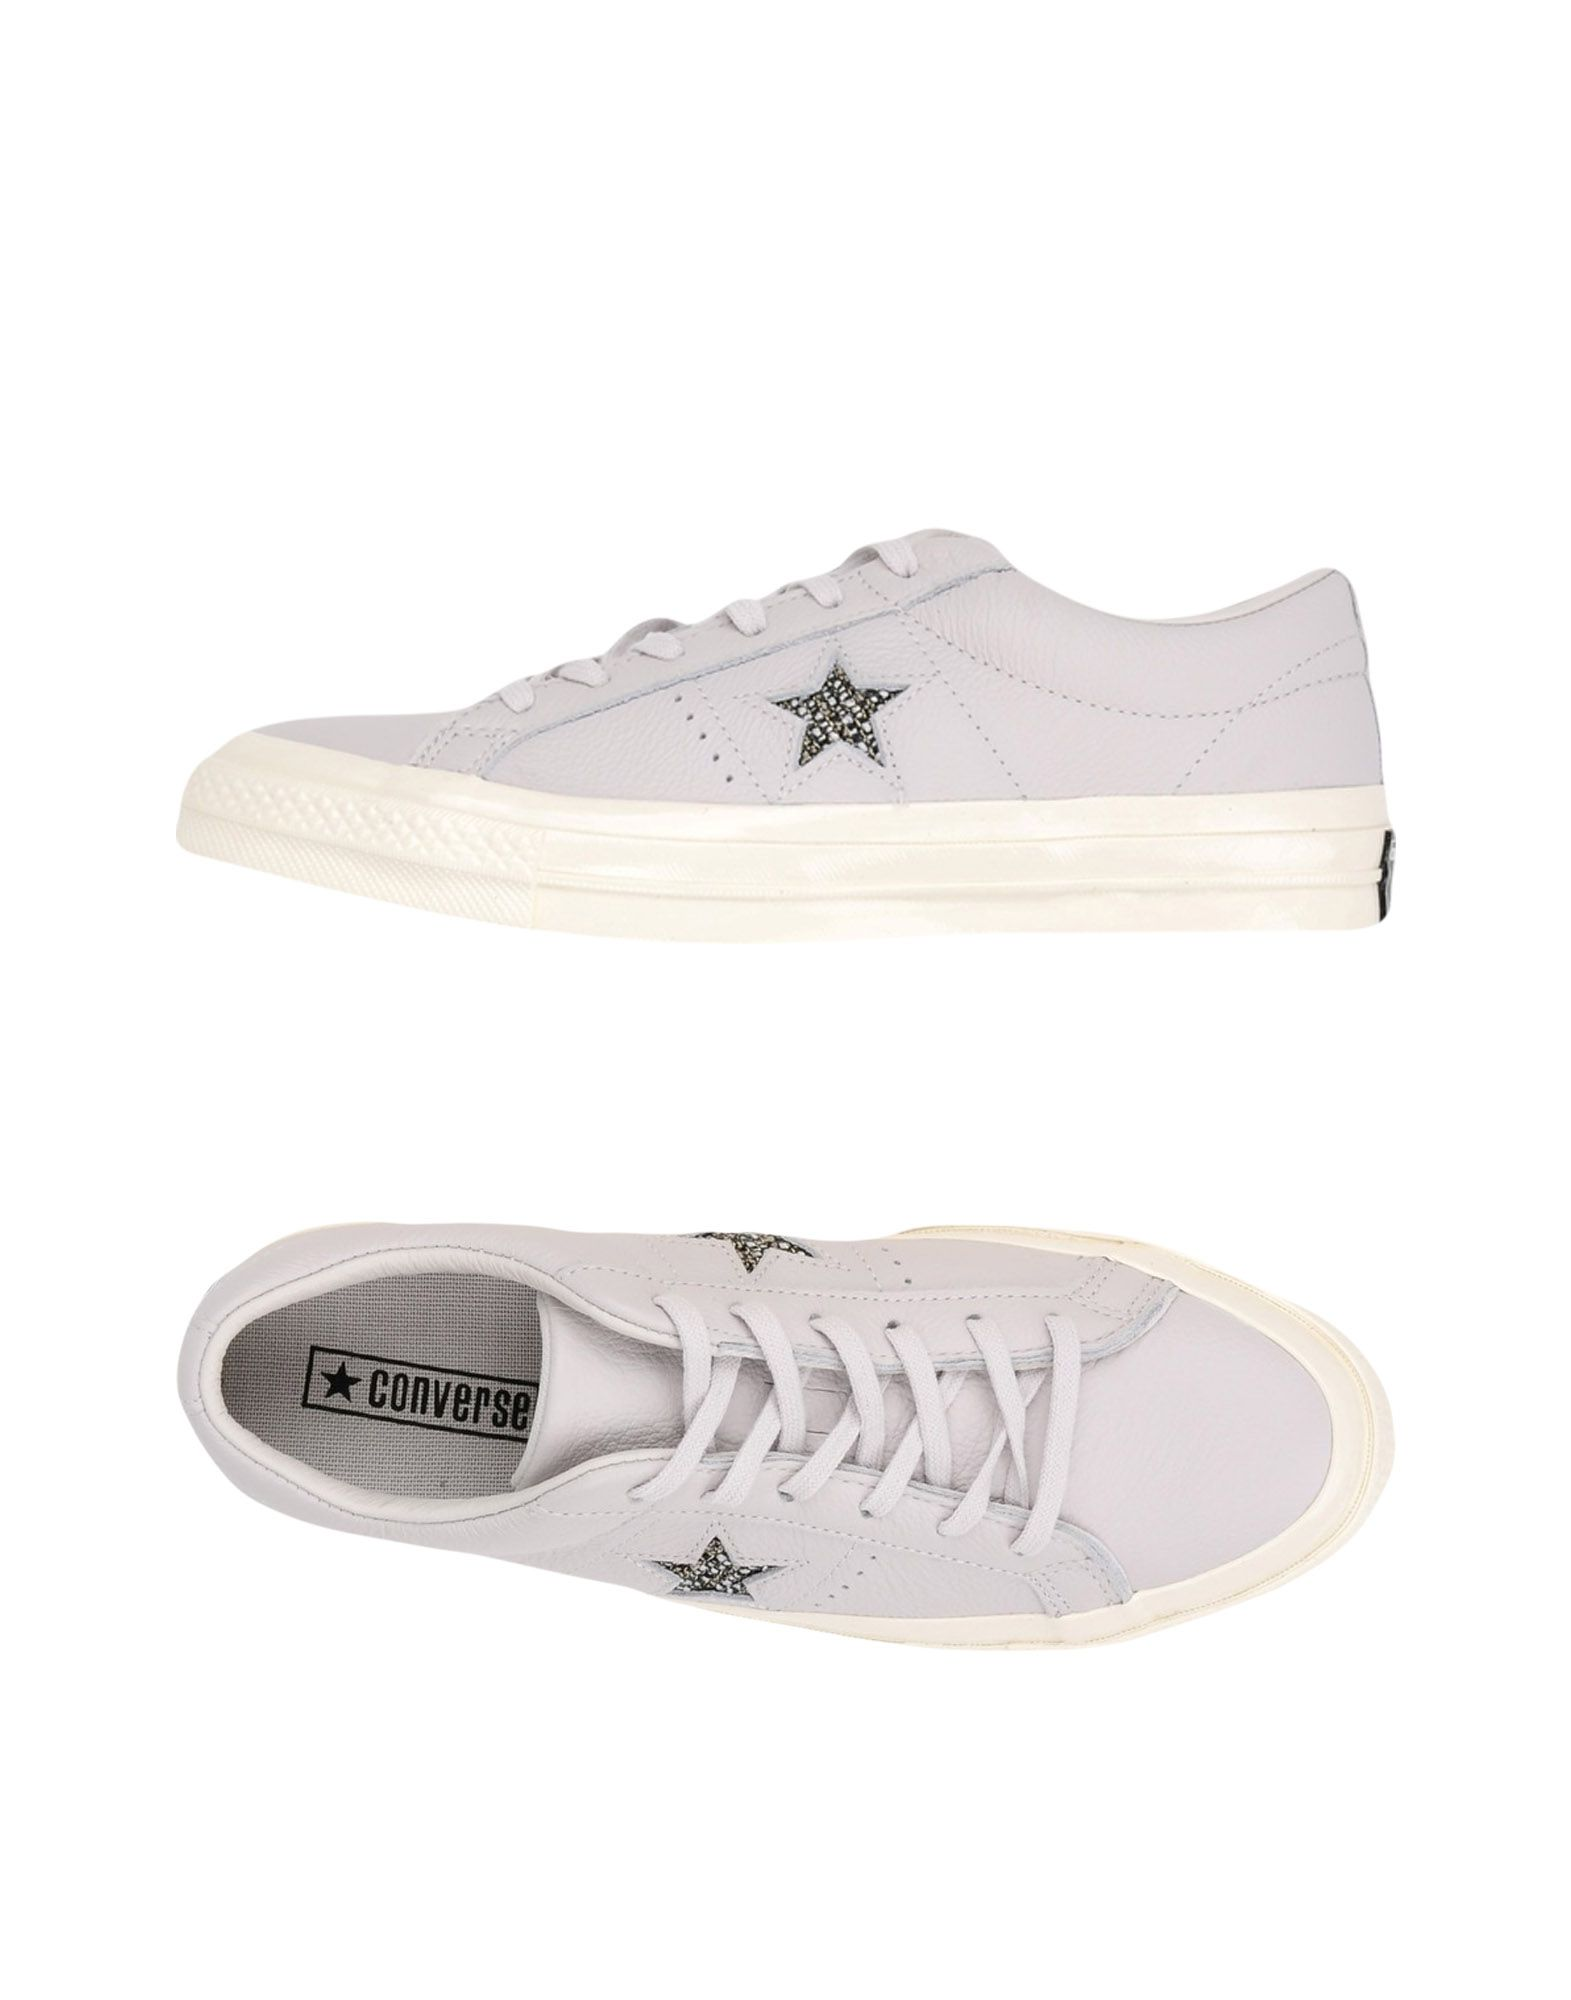 Scarpe Star da Ginnastica Converse All Star Scarpe One Star Ox Leather - Donna - 11394558MX fd2907